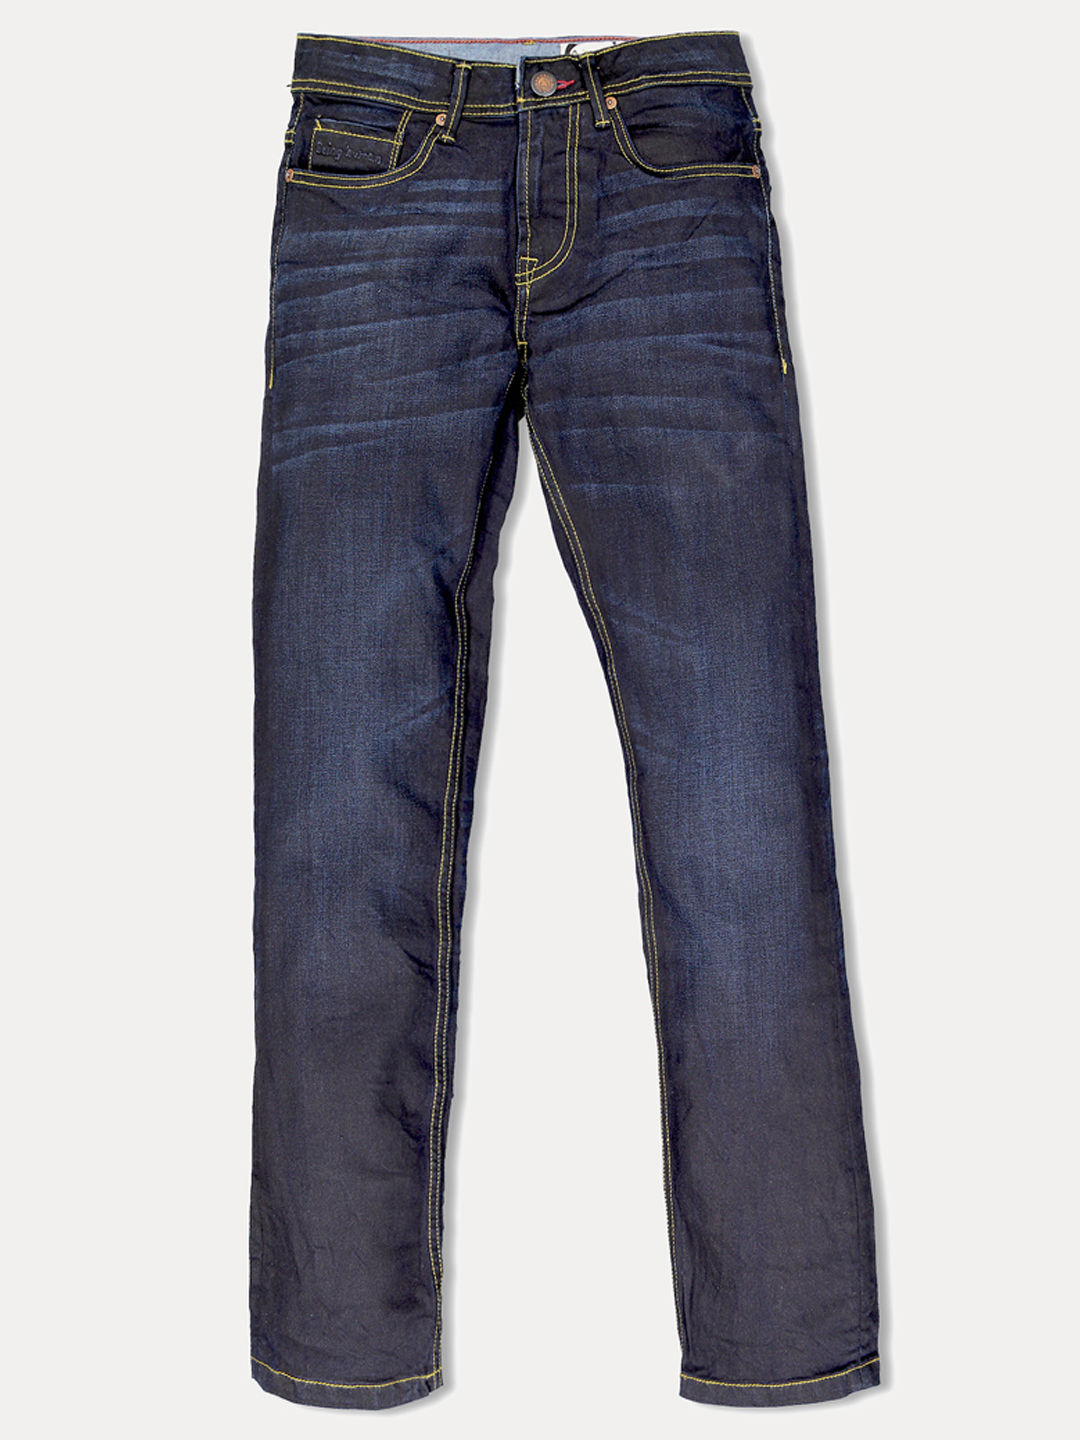 DARK BLUE SOLID STRAIGHT JEANS